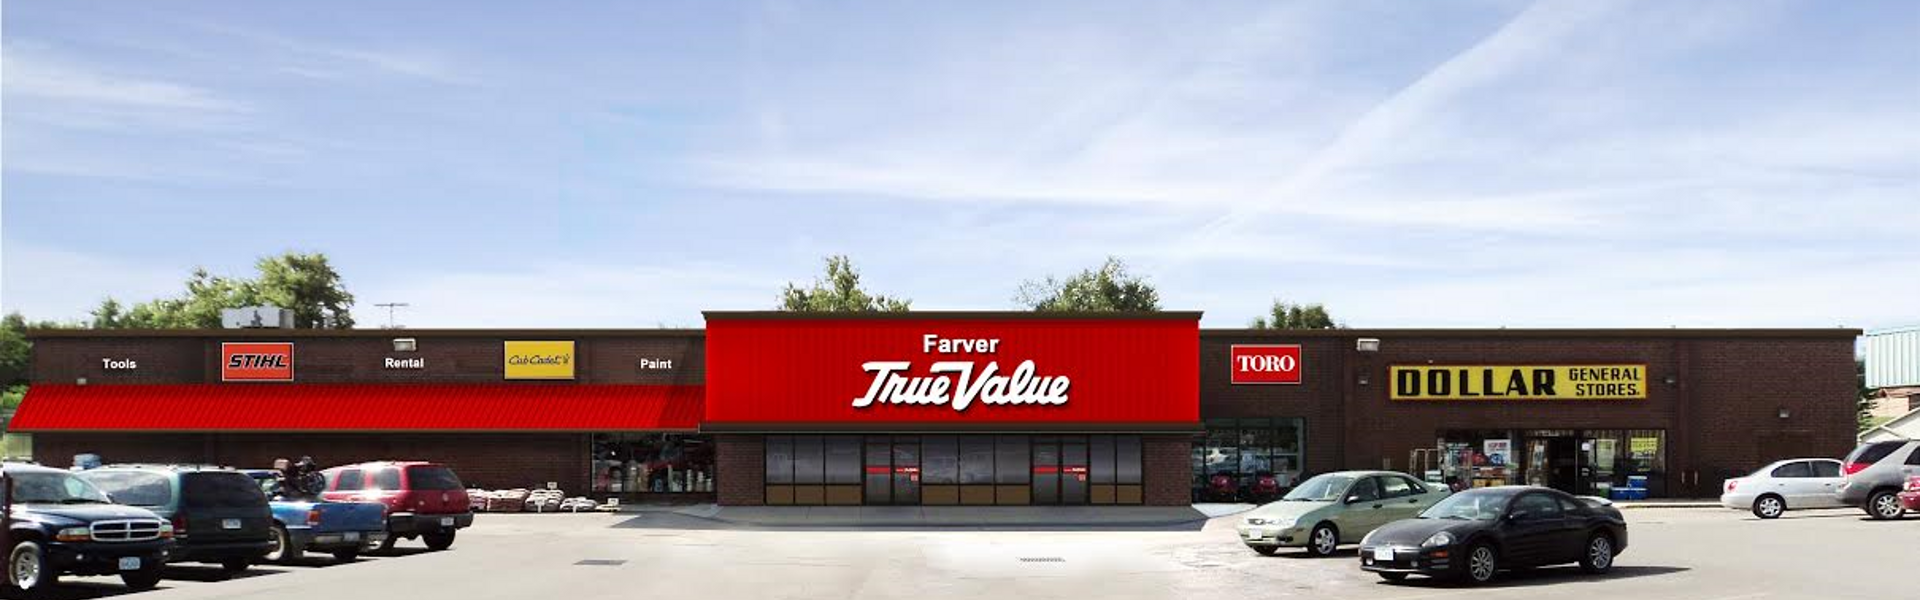 Farver True Value Store Front